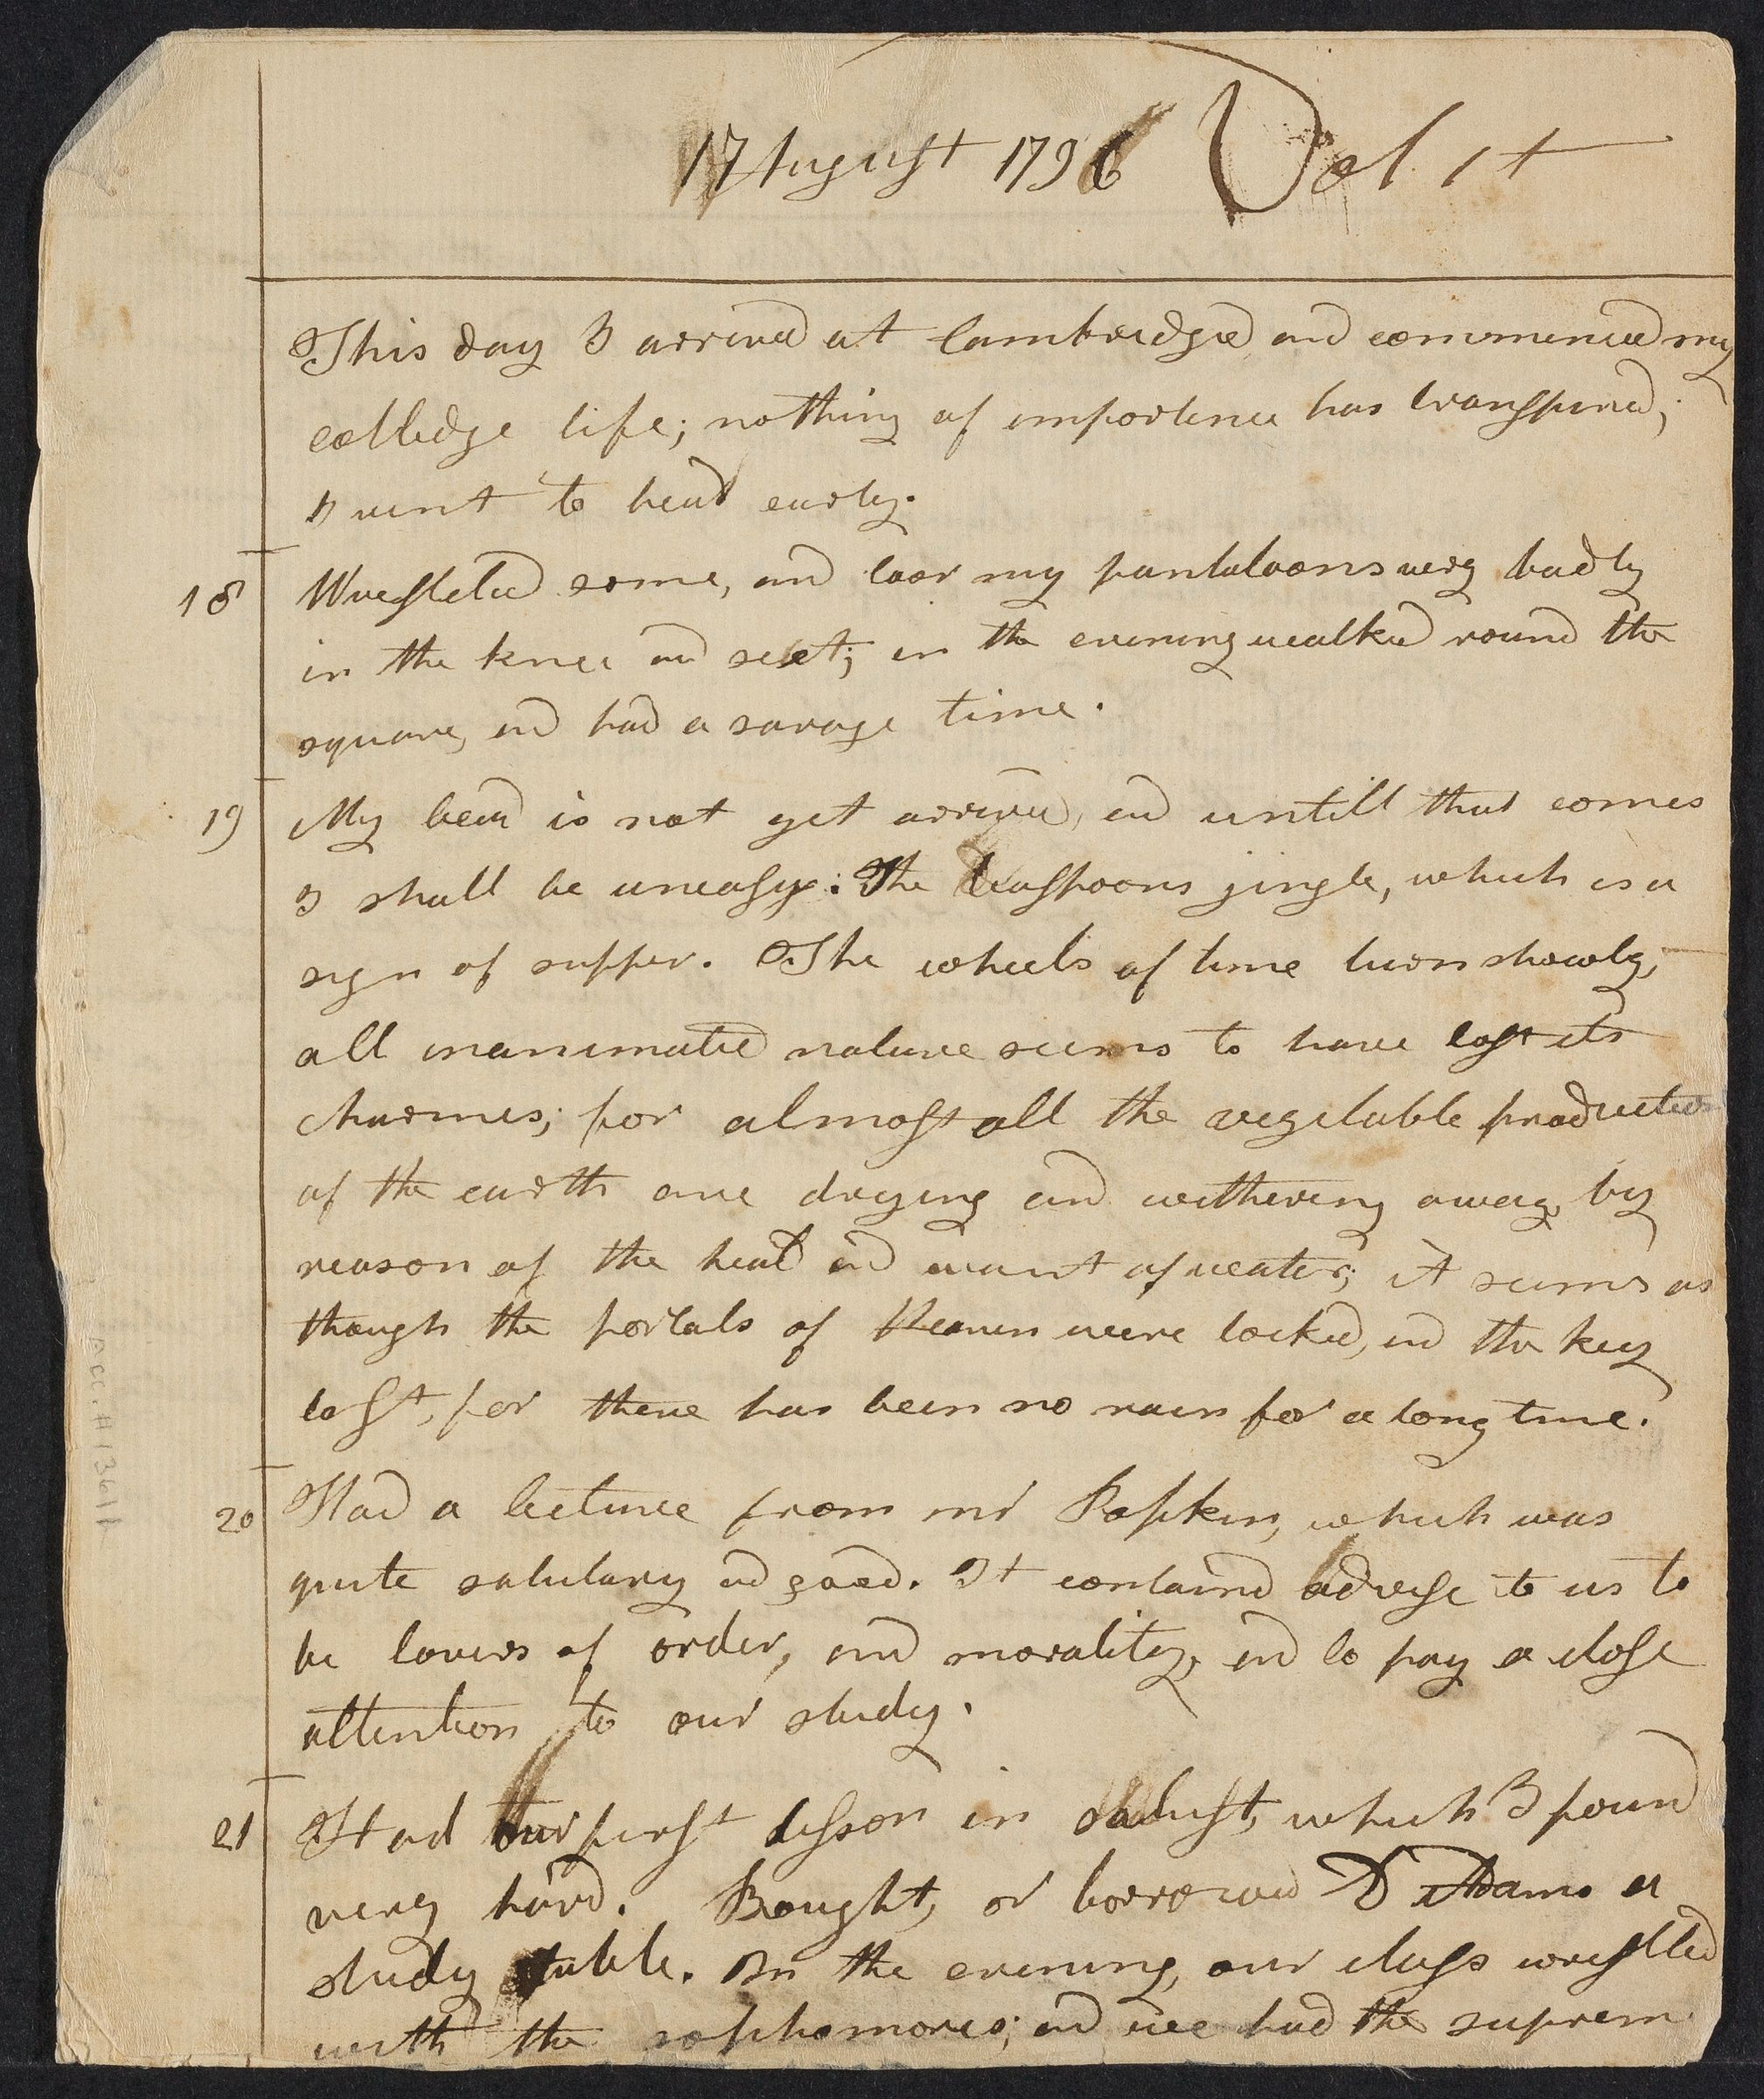 Diary of Elias Mann, 1796-1800